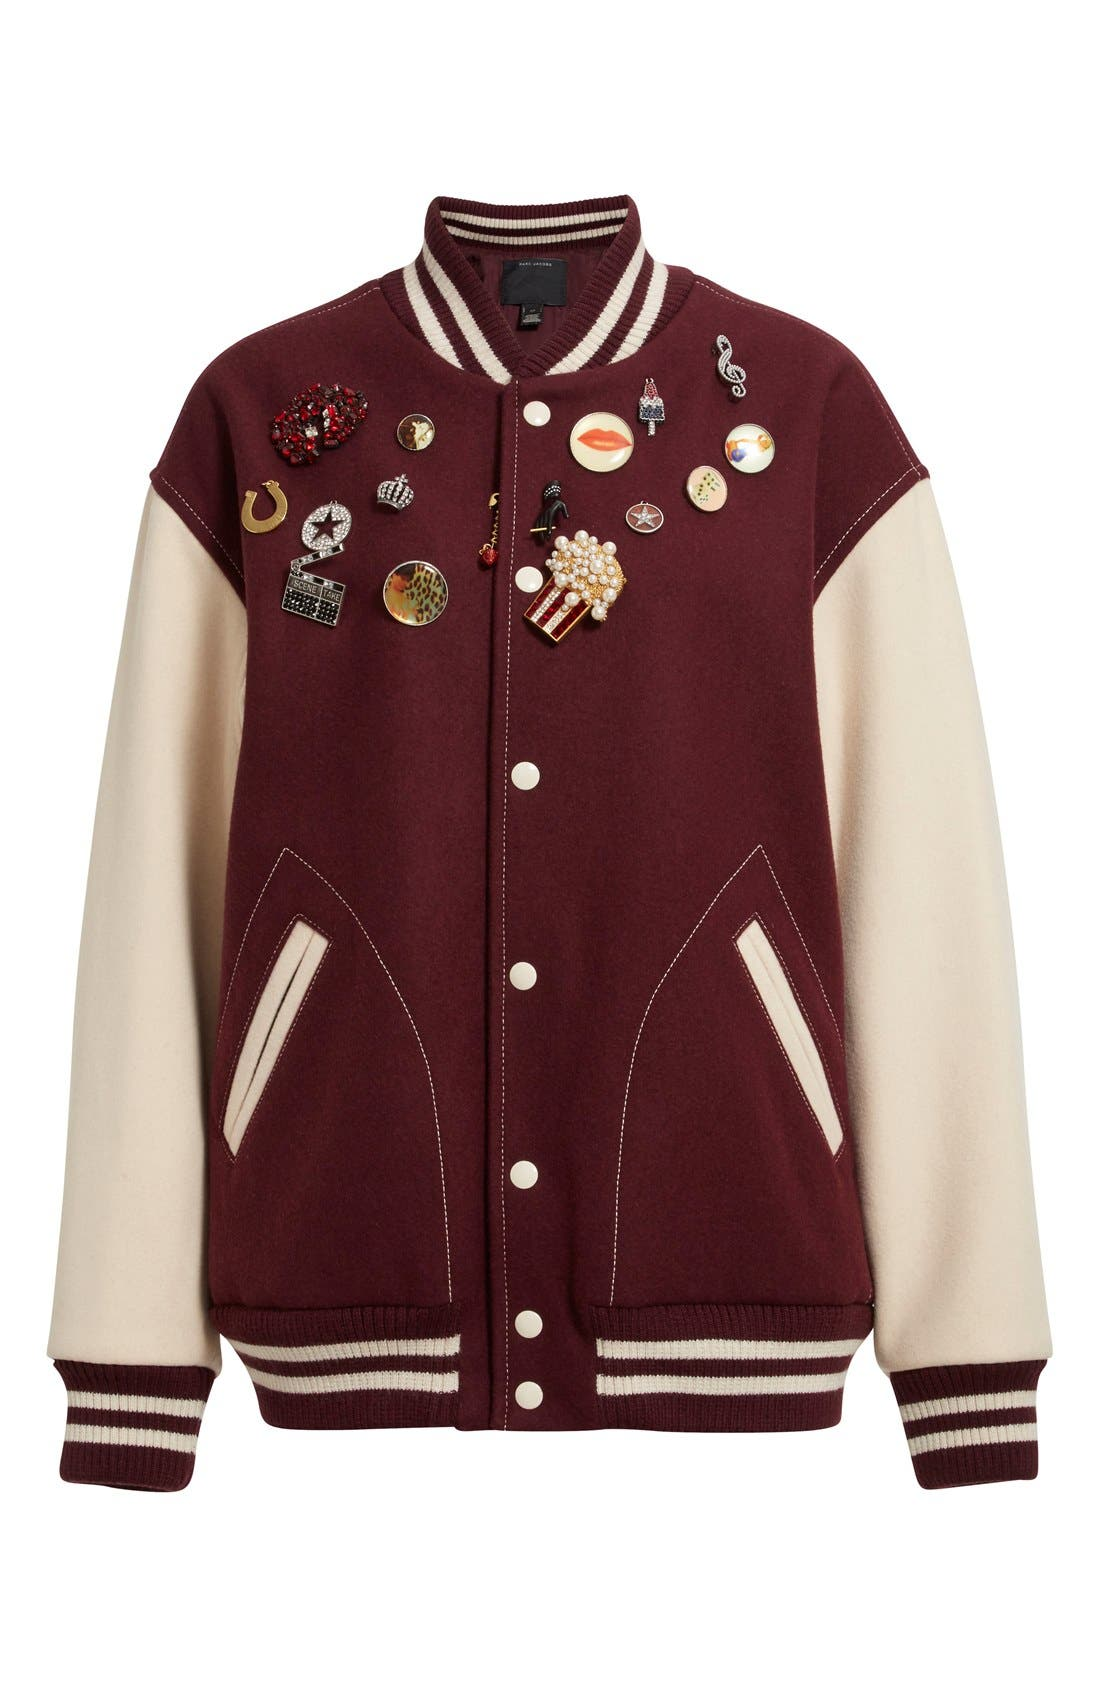 Alternate Image 4  - MARC JACOBS Embellished Varsity Jacket